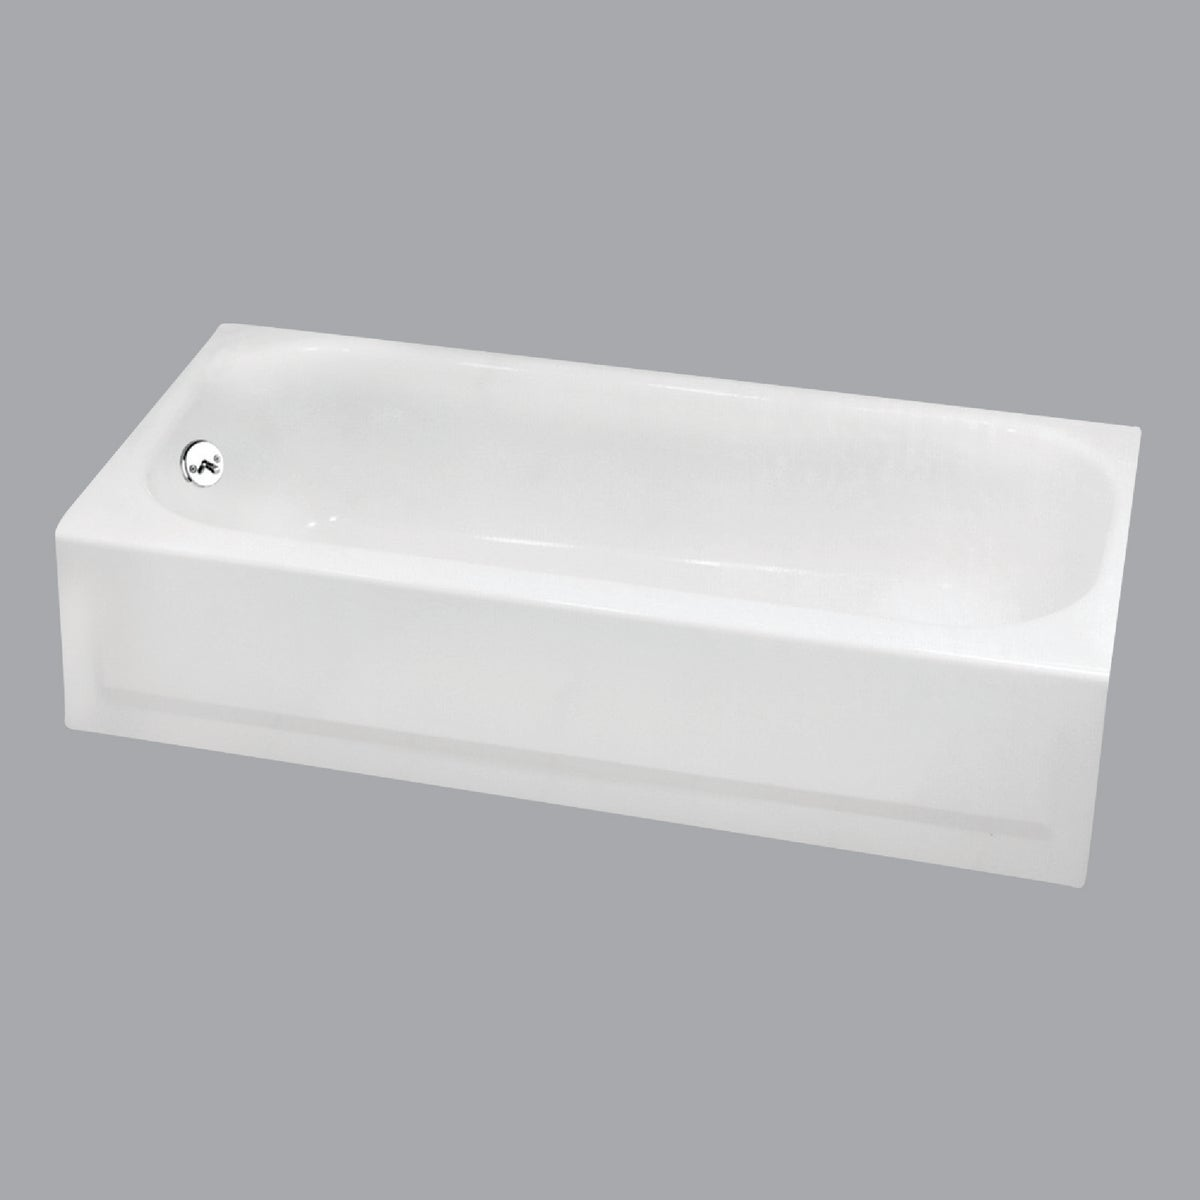 BONE L/H TUB - 2505-733-01 by Briggs